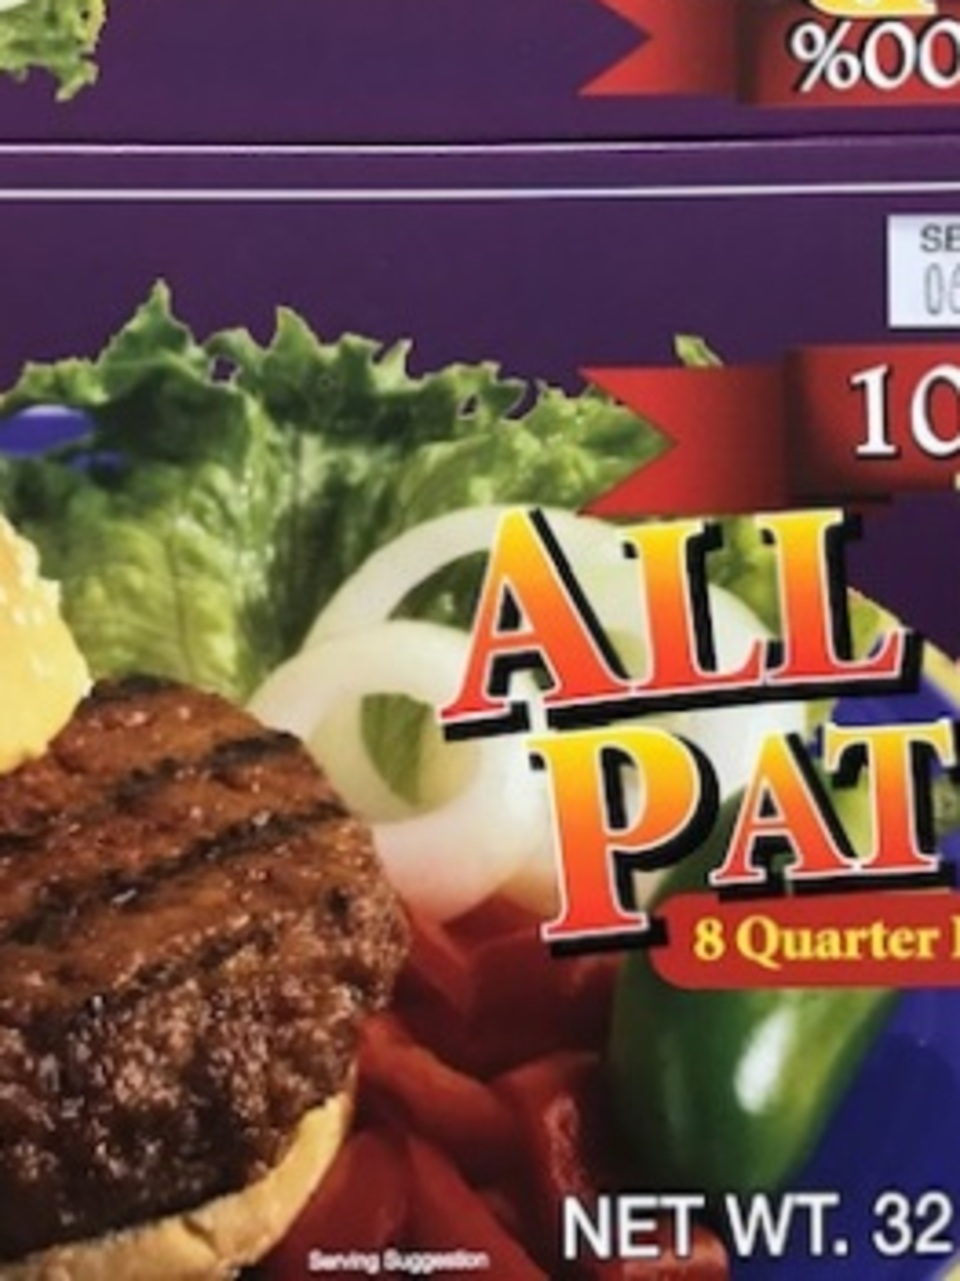 beef products recalled over E. coli